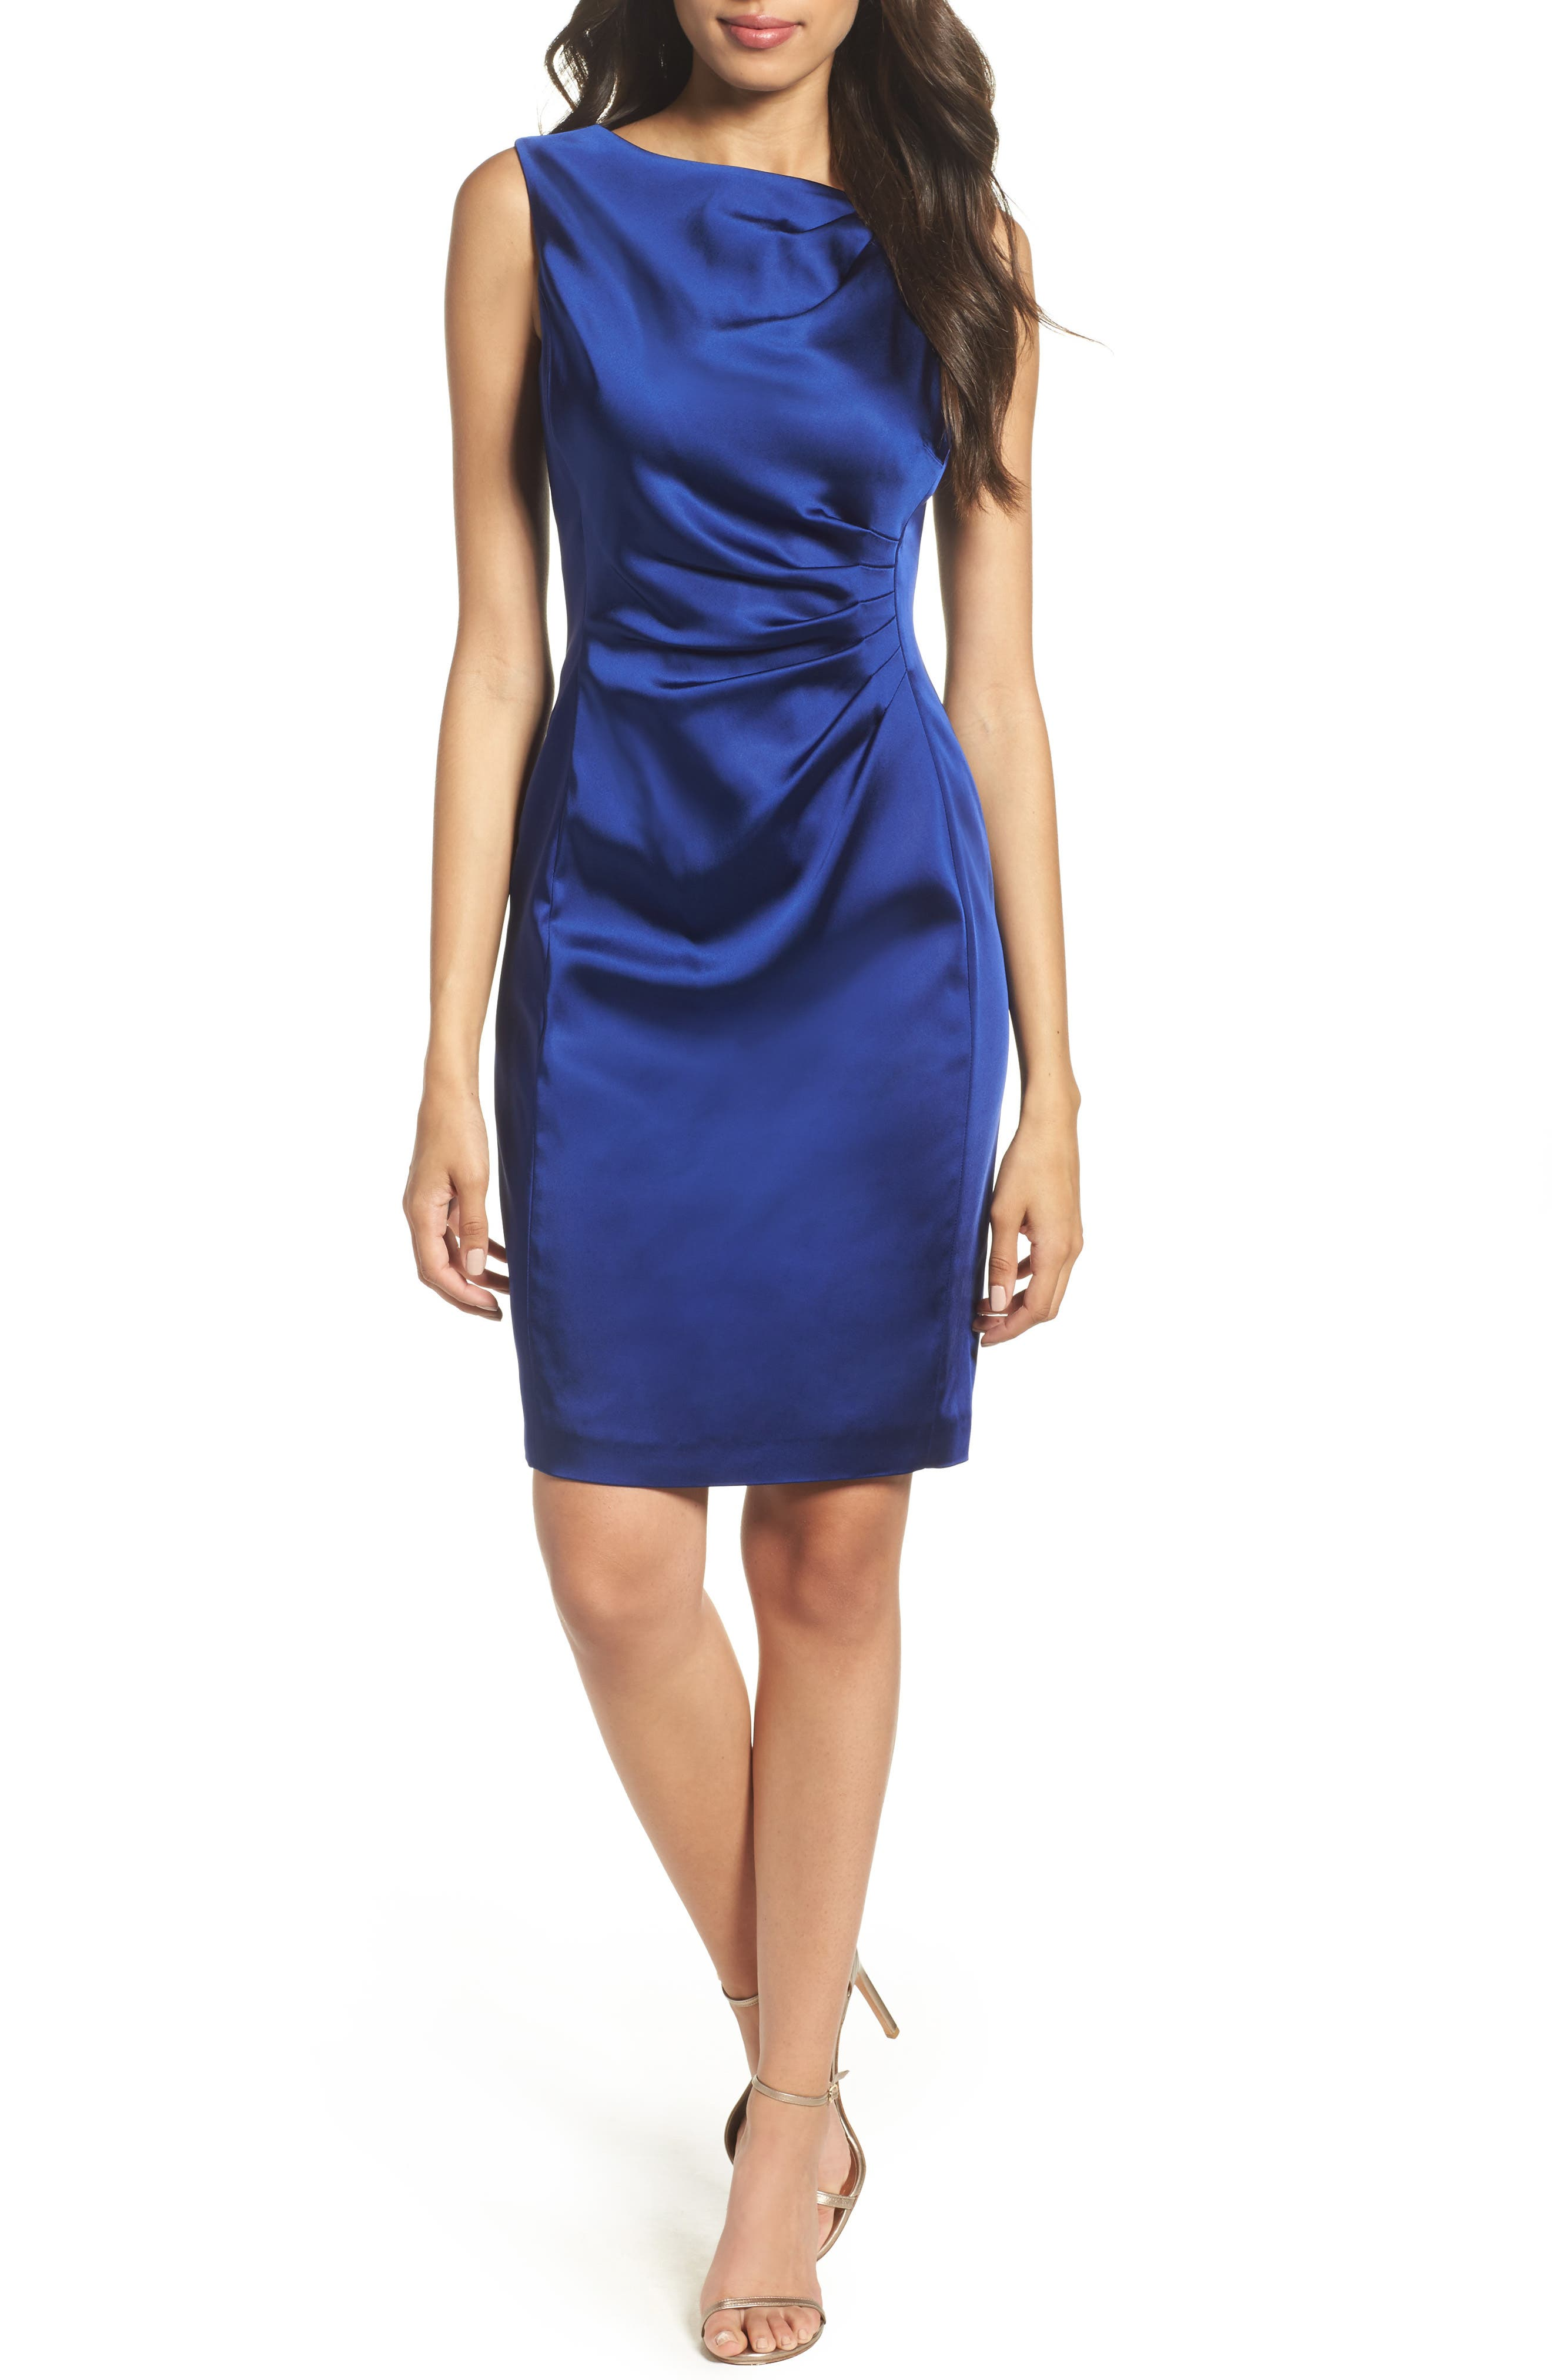 Tahari Stretch Satin Sheath Dress (Petite)